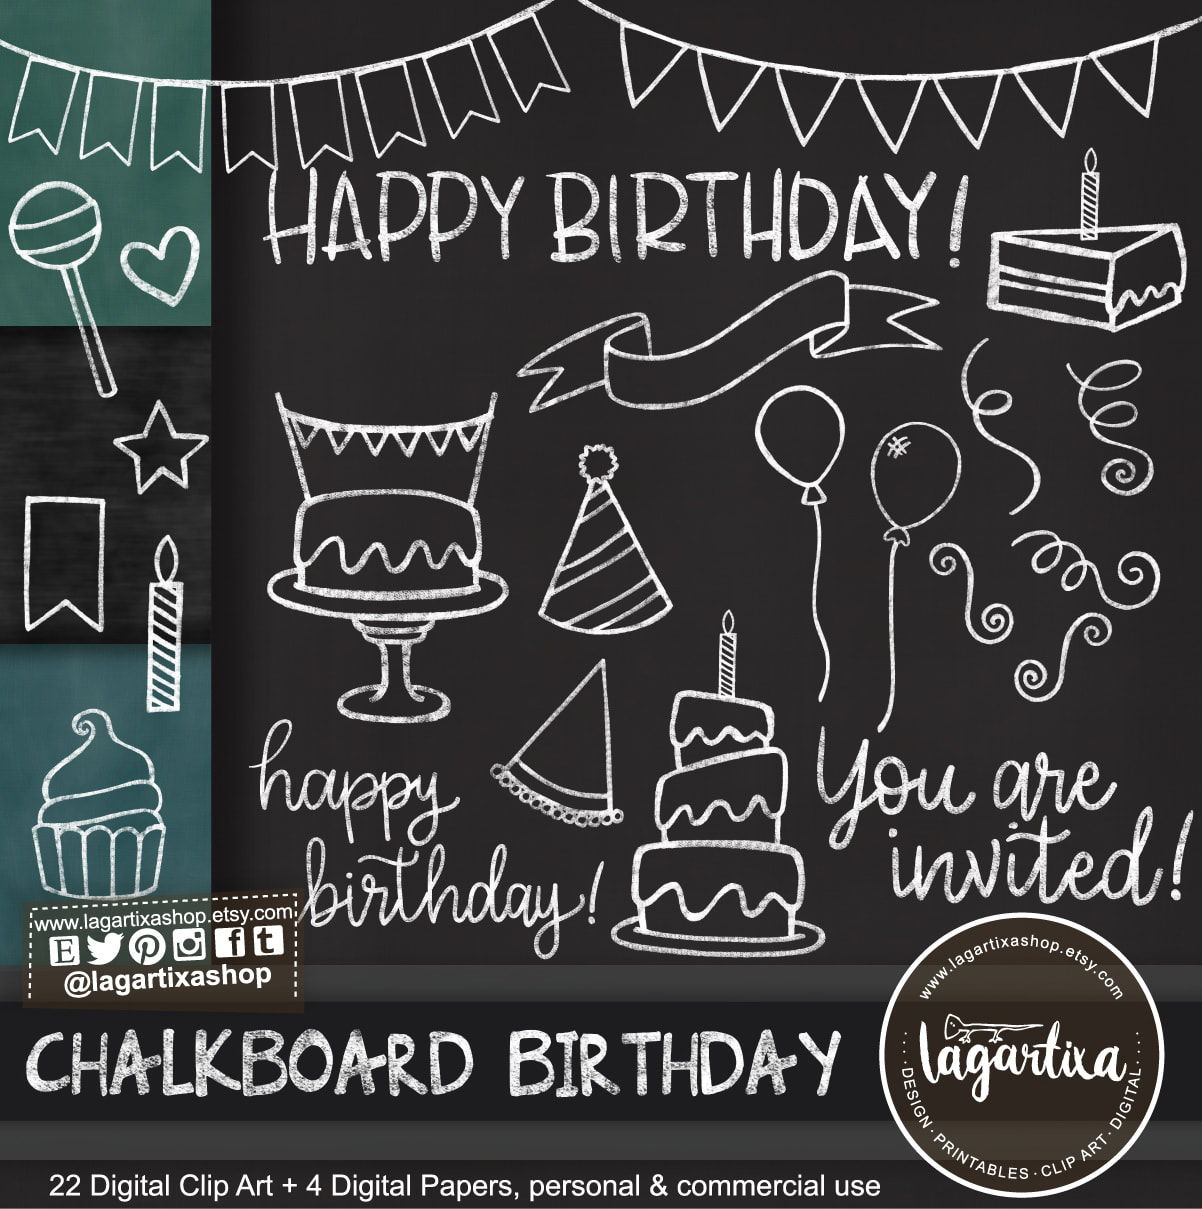 Chalkboard Birthday Party Clip art & Digital Paper Green Black Cake Party  Hat Banner Balloons Cupcake Ribbons invitations party printables.